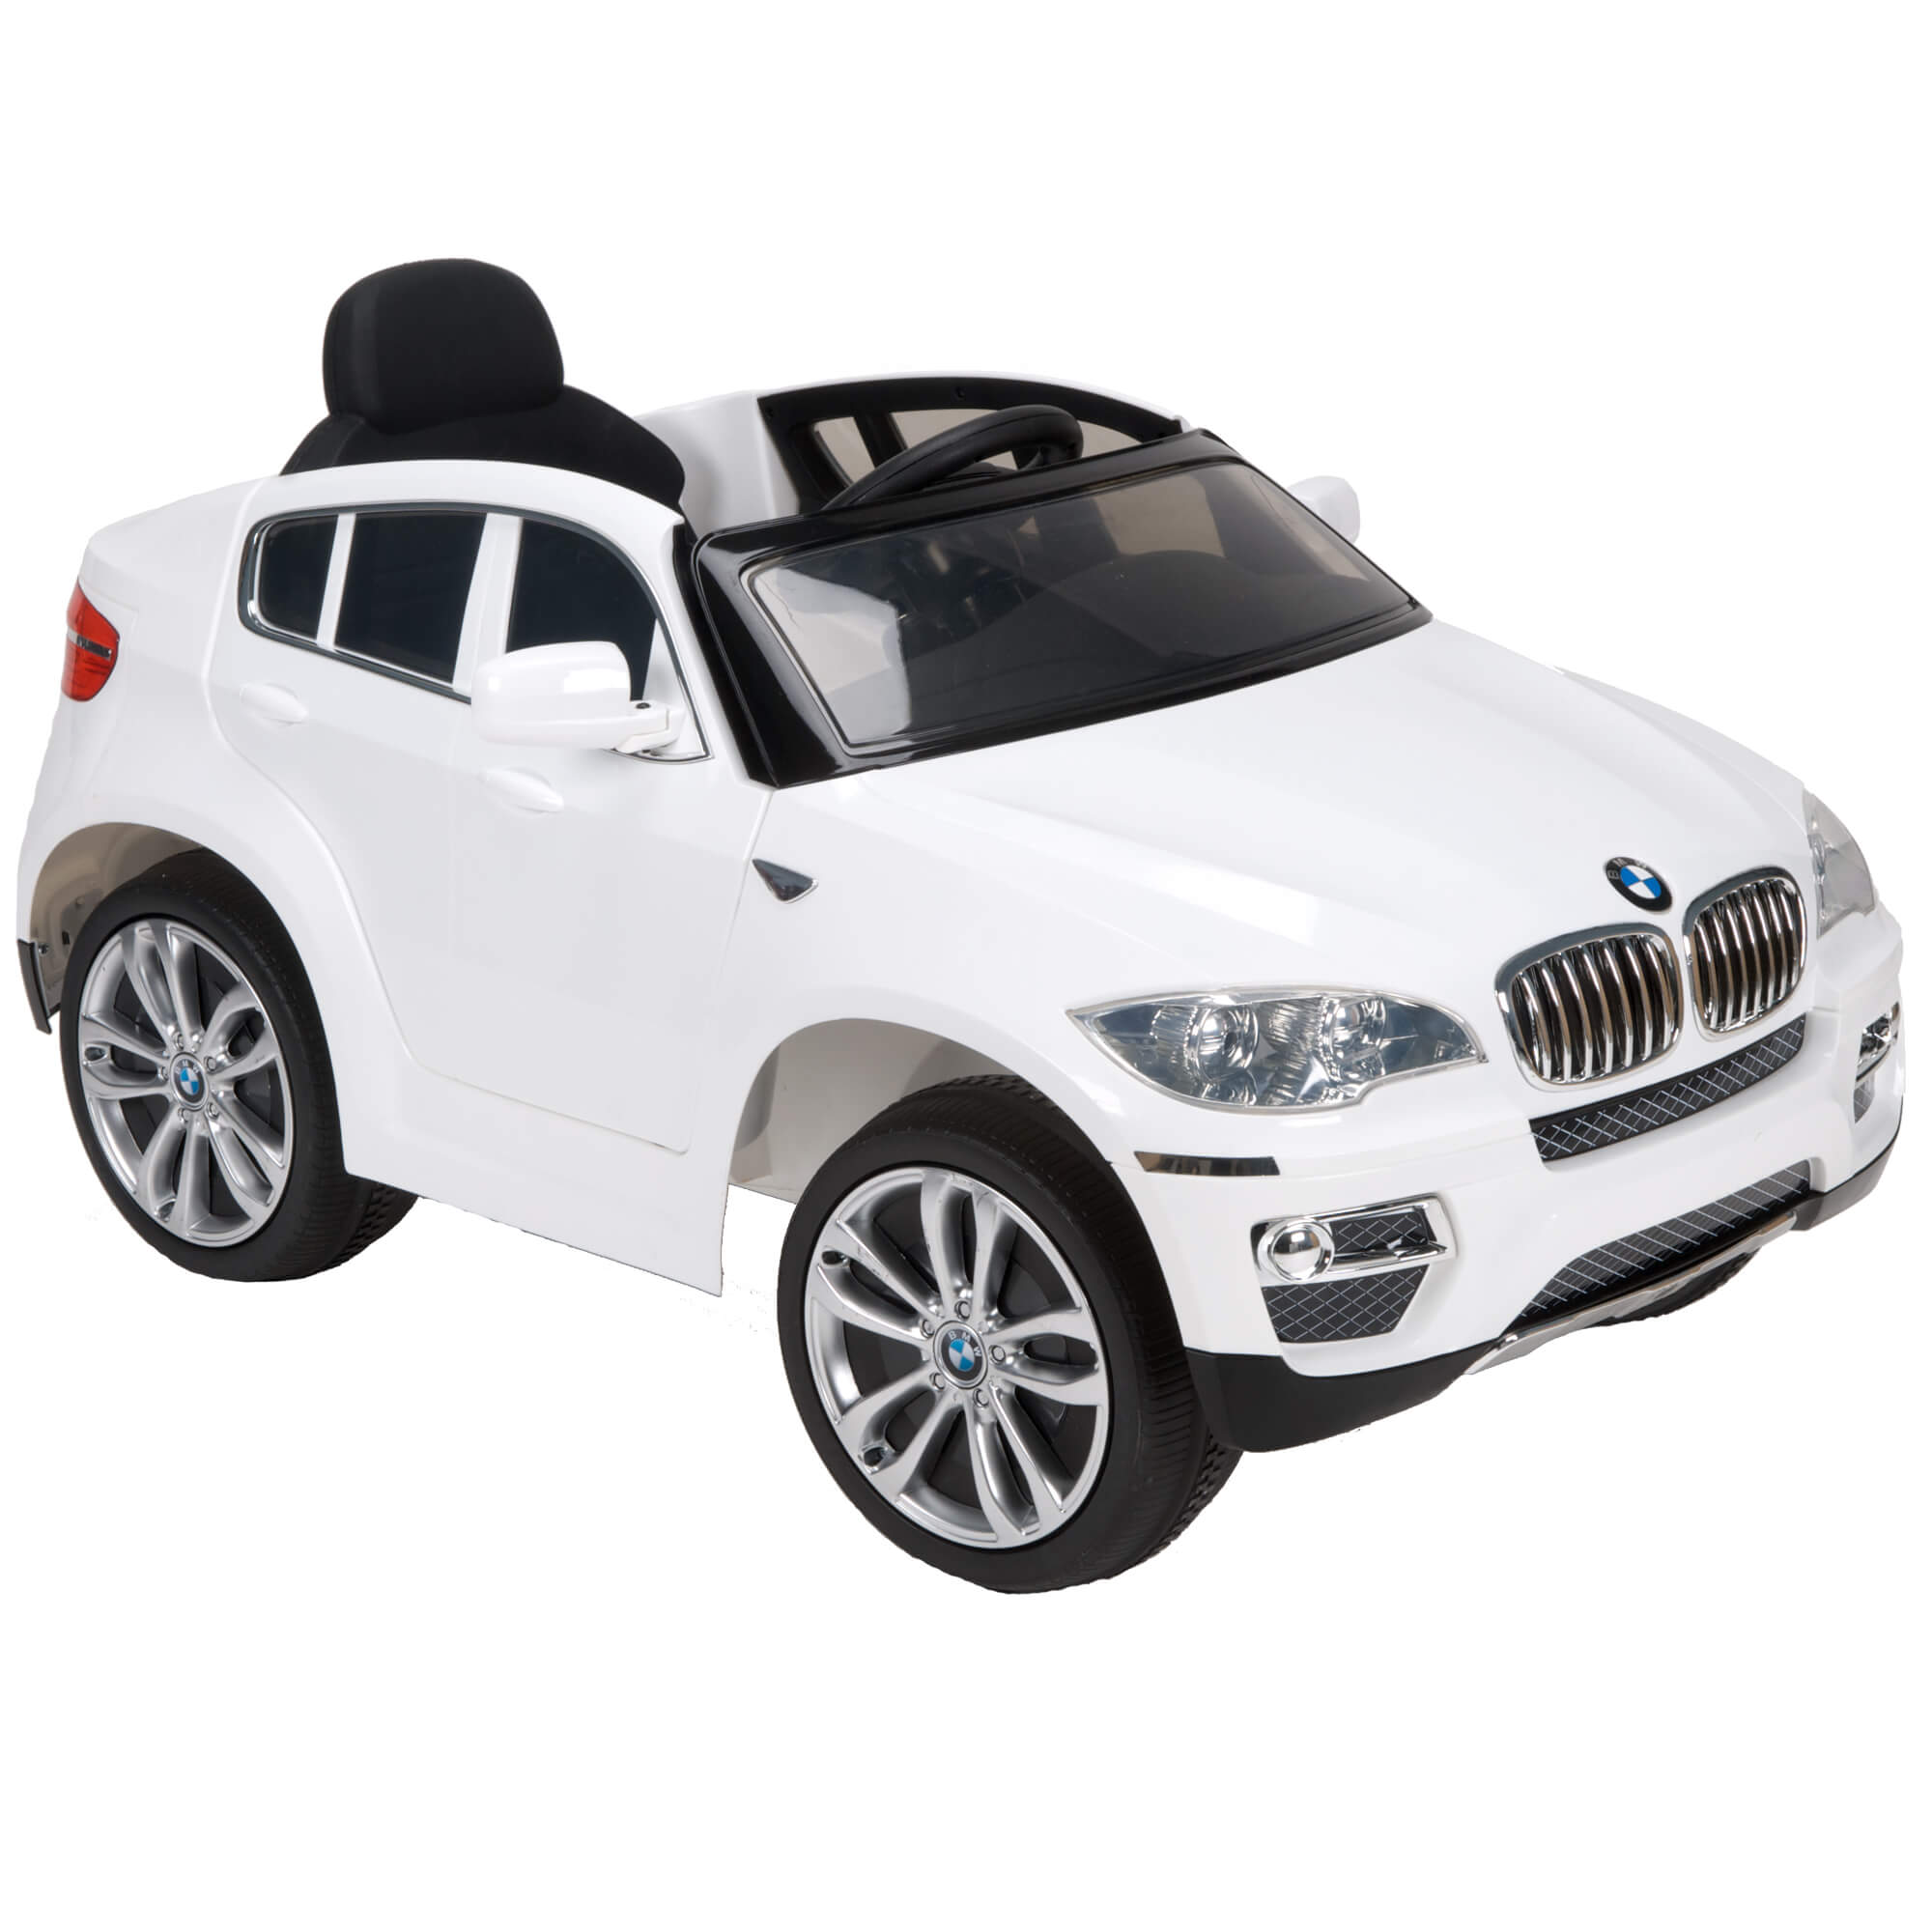 Bmw X6 Toy Car: Electric Cars For Kids BMW X6 6-Volt To Ride For 3 Year